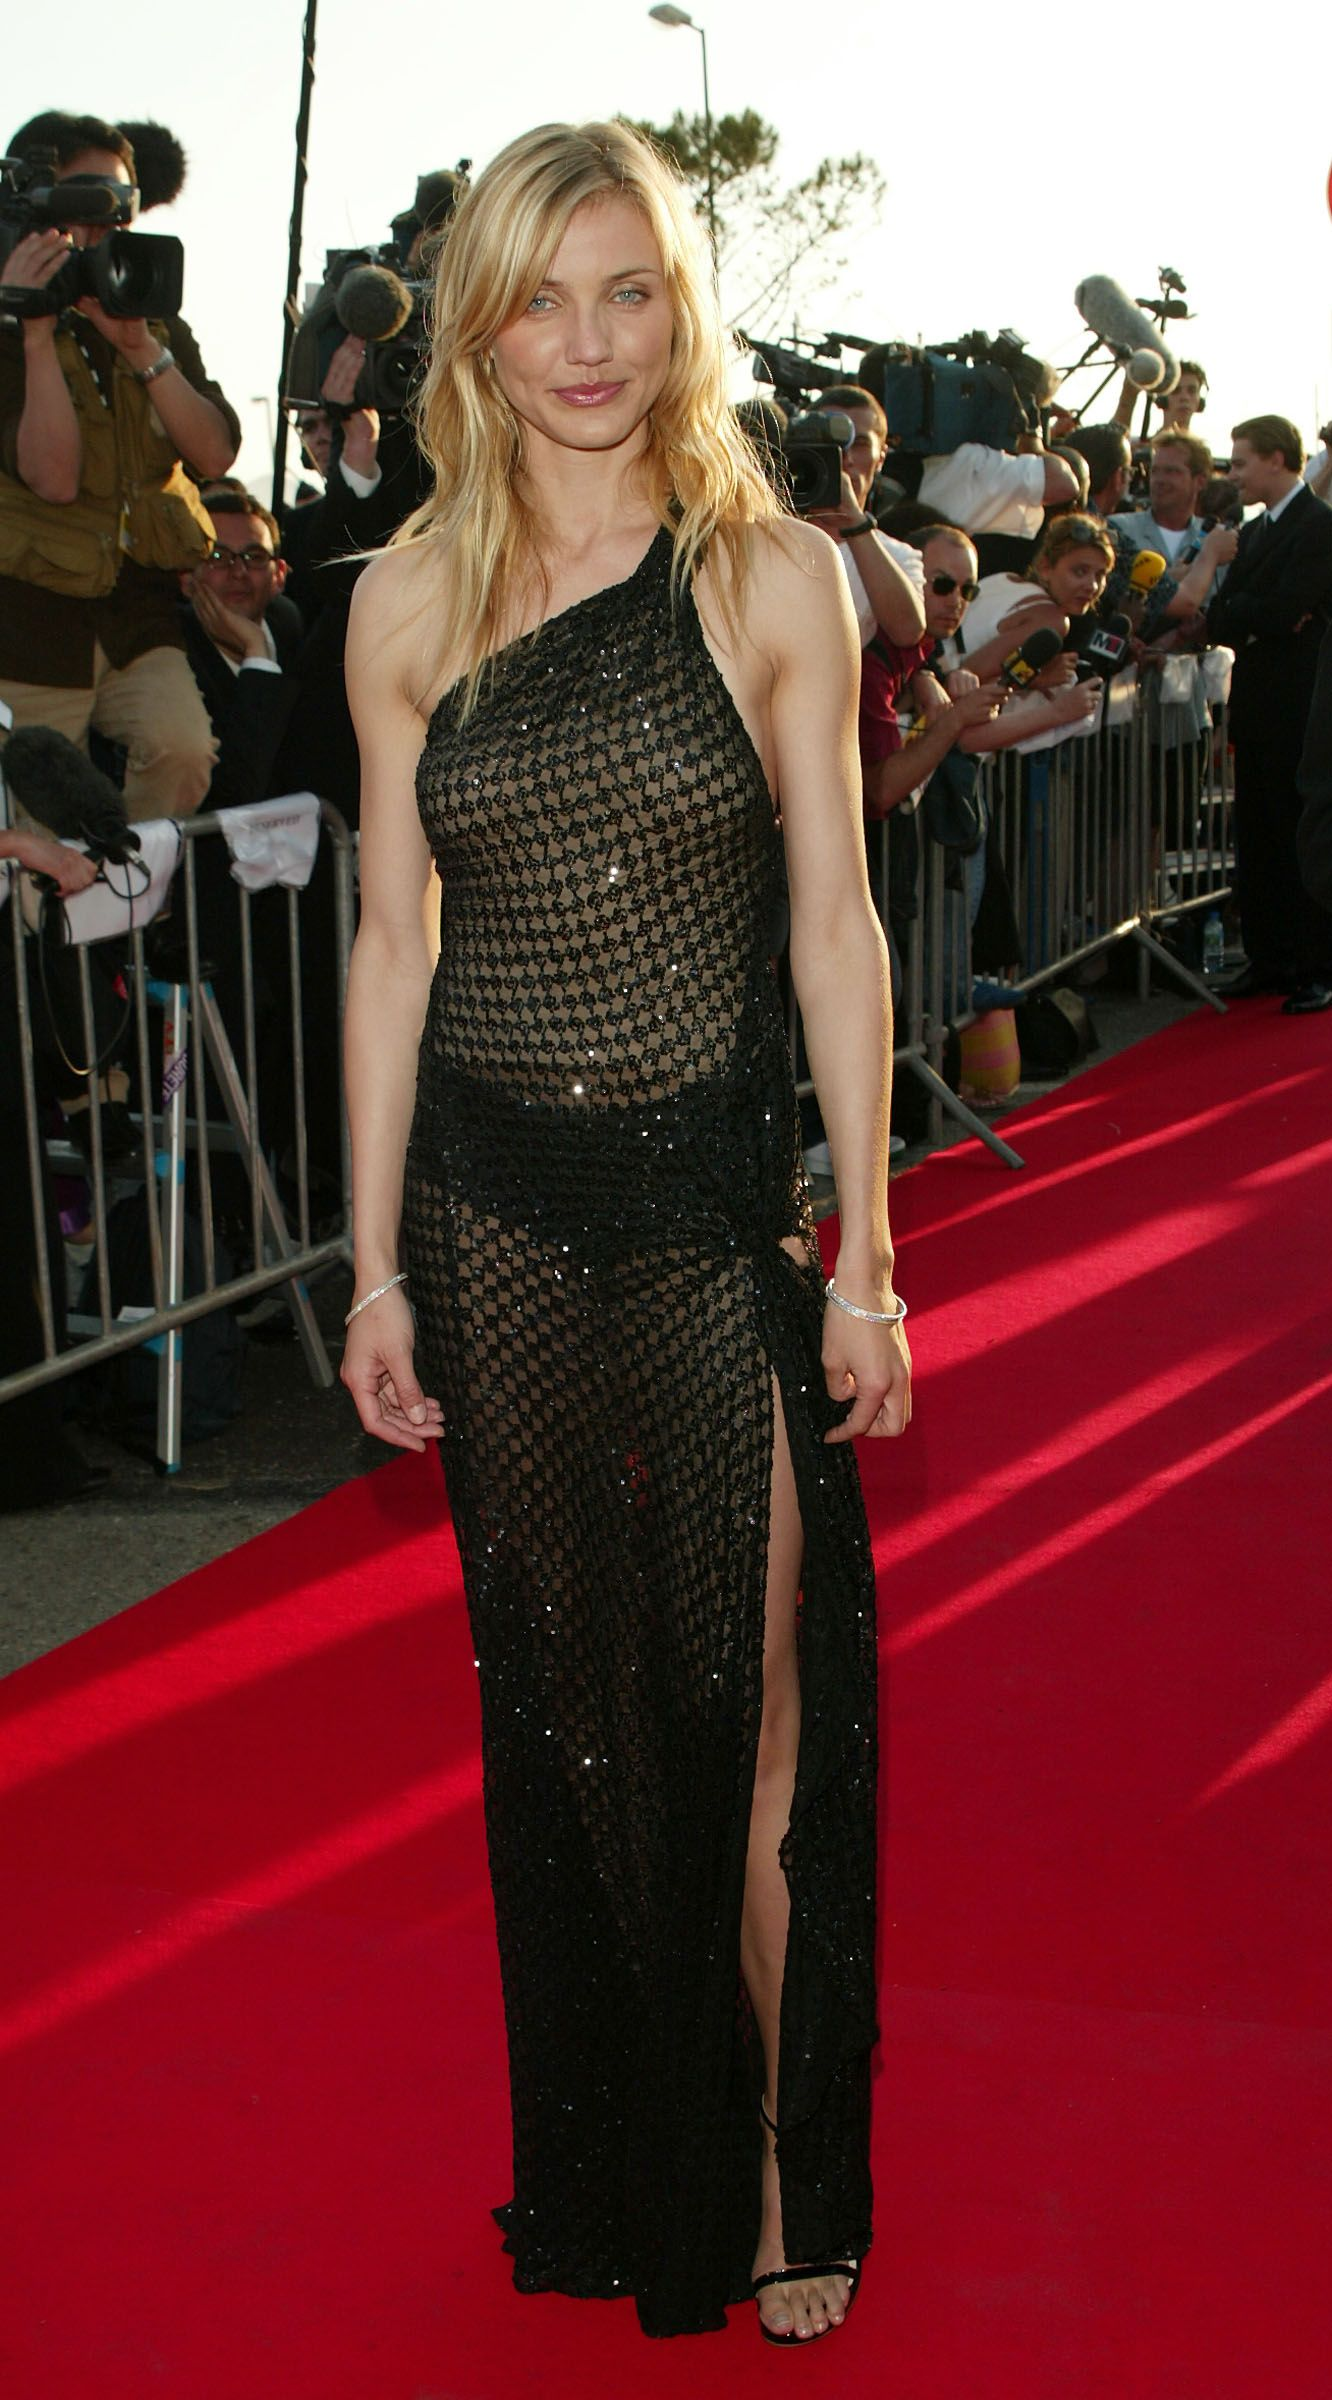 Cannes Film Festival most naked looks